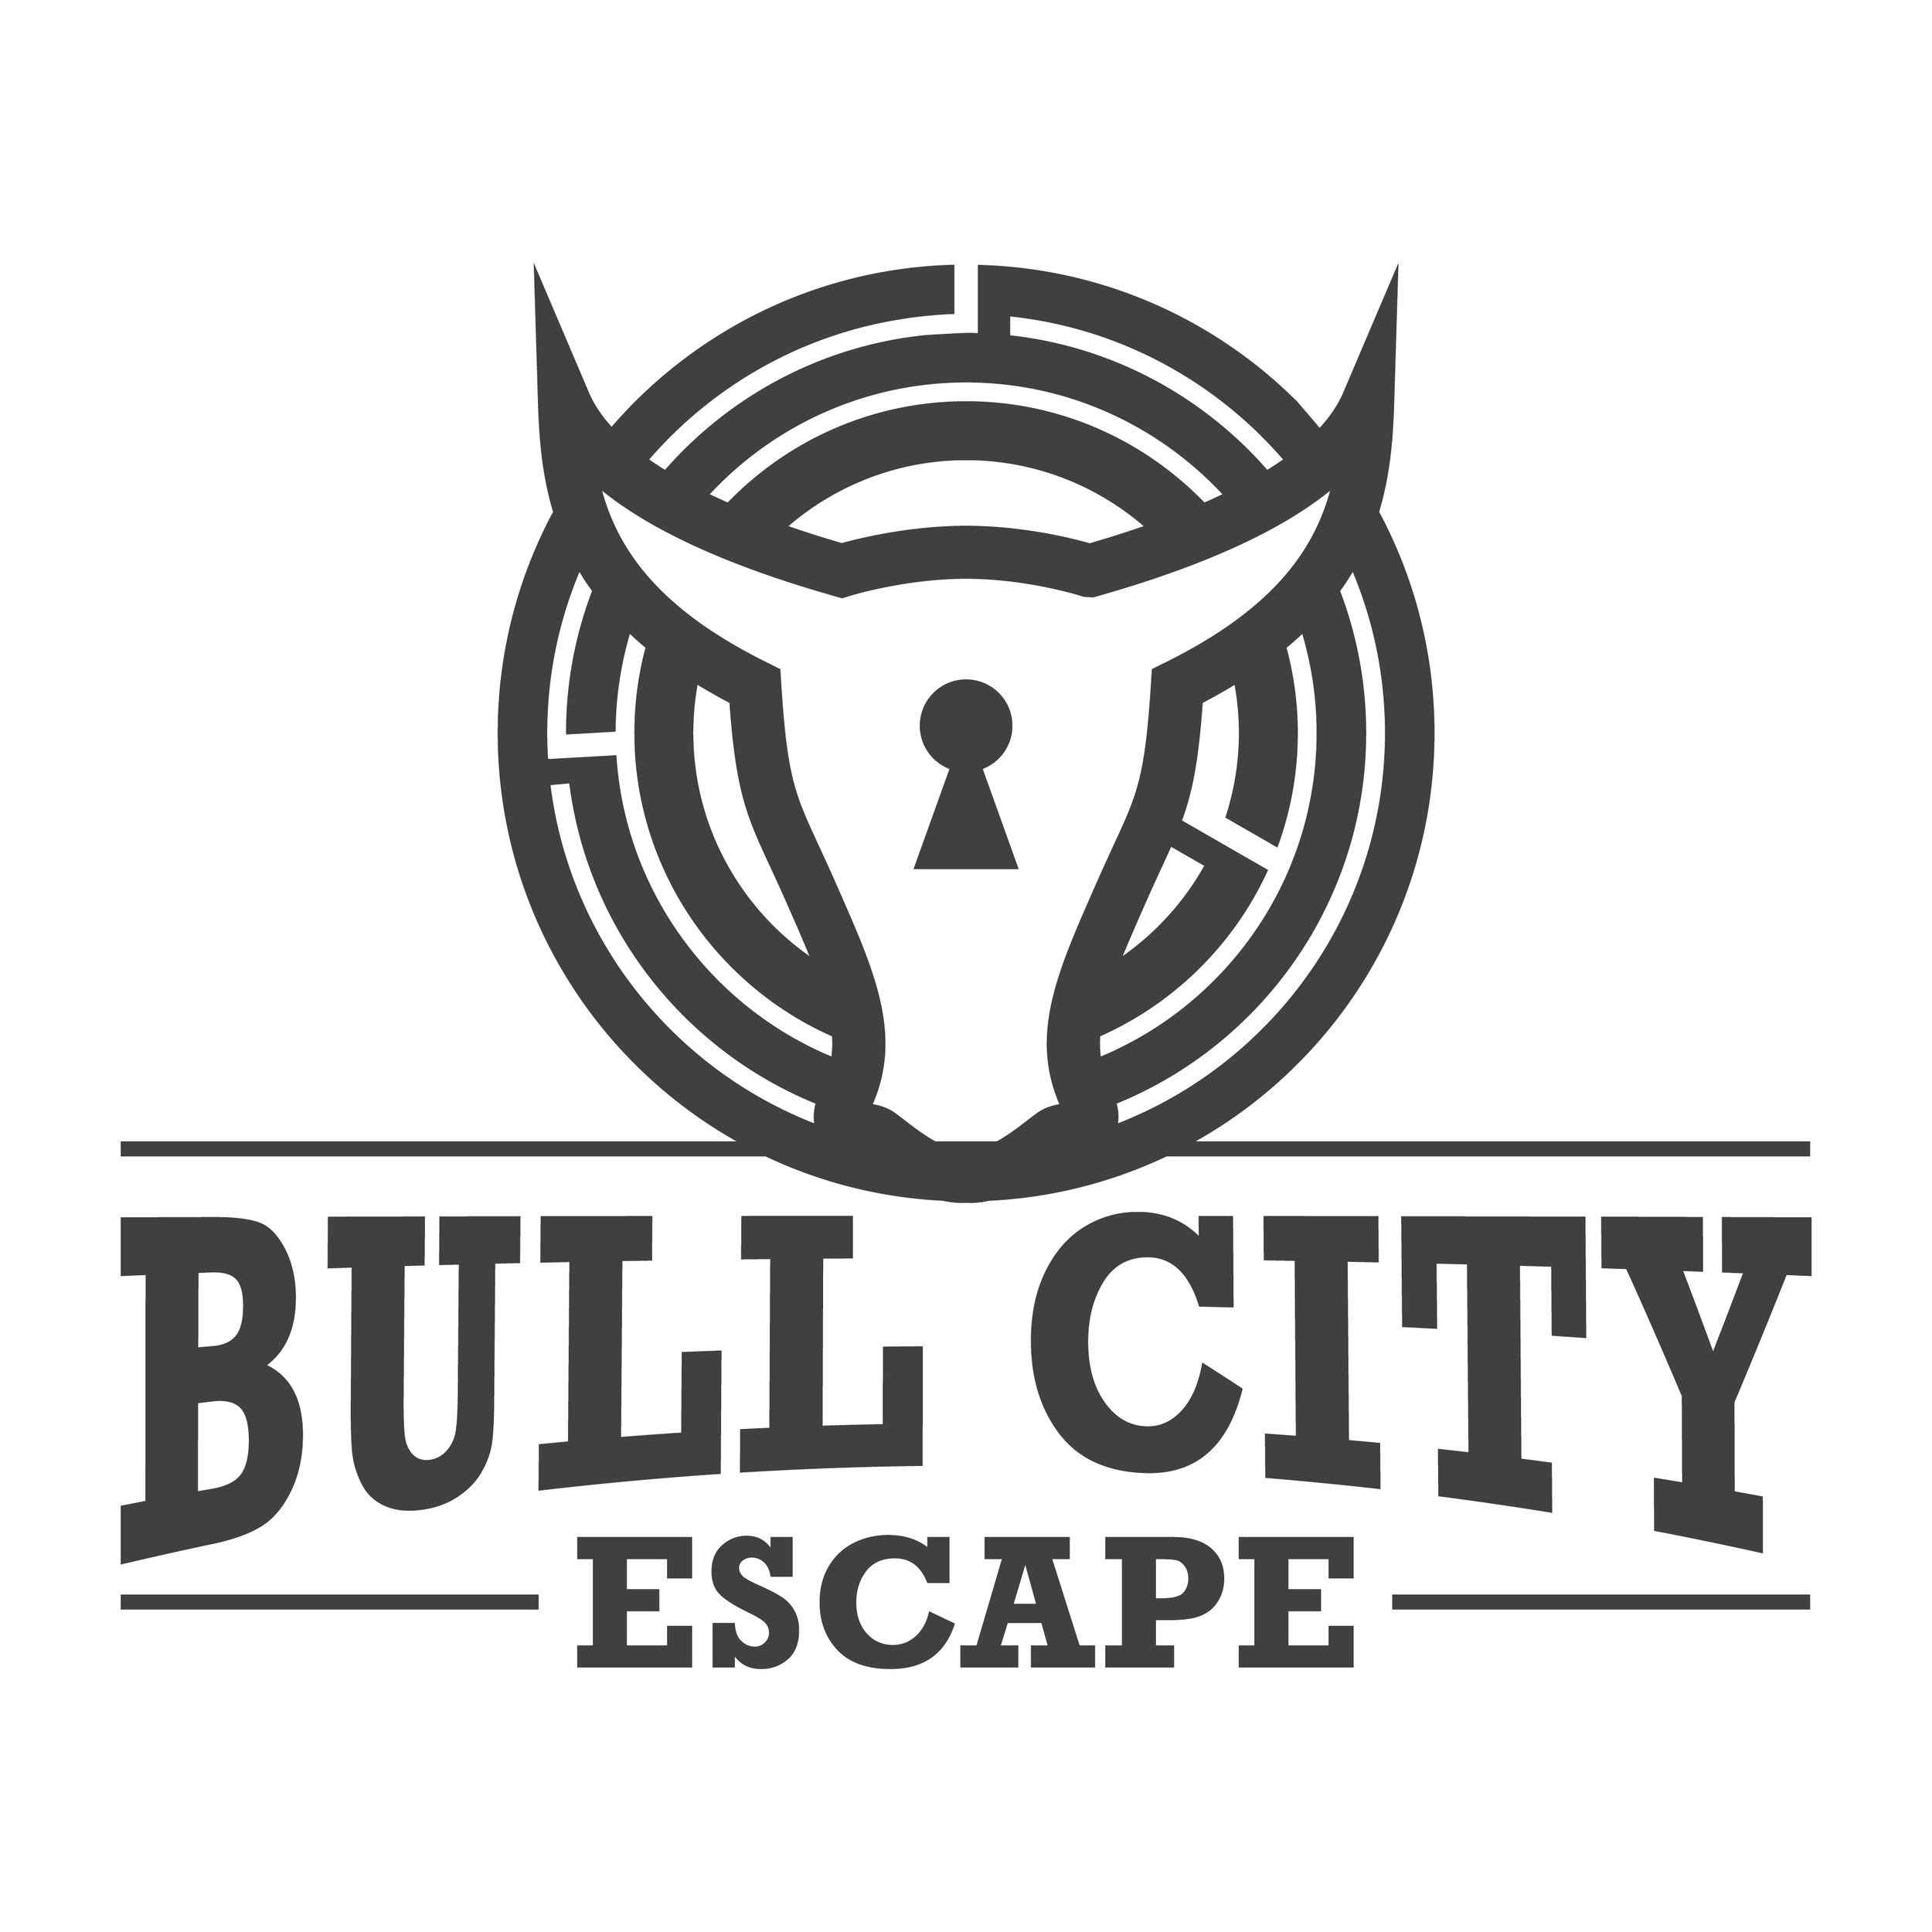 This is a picture of the owner of Bull City Escape. It has been voted the best escape room in Durham, North Carolina.